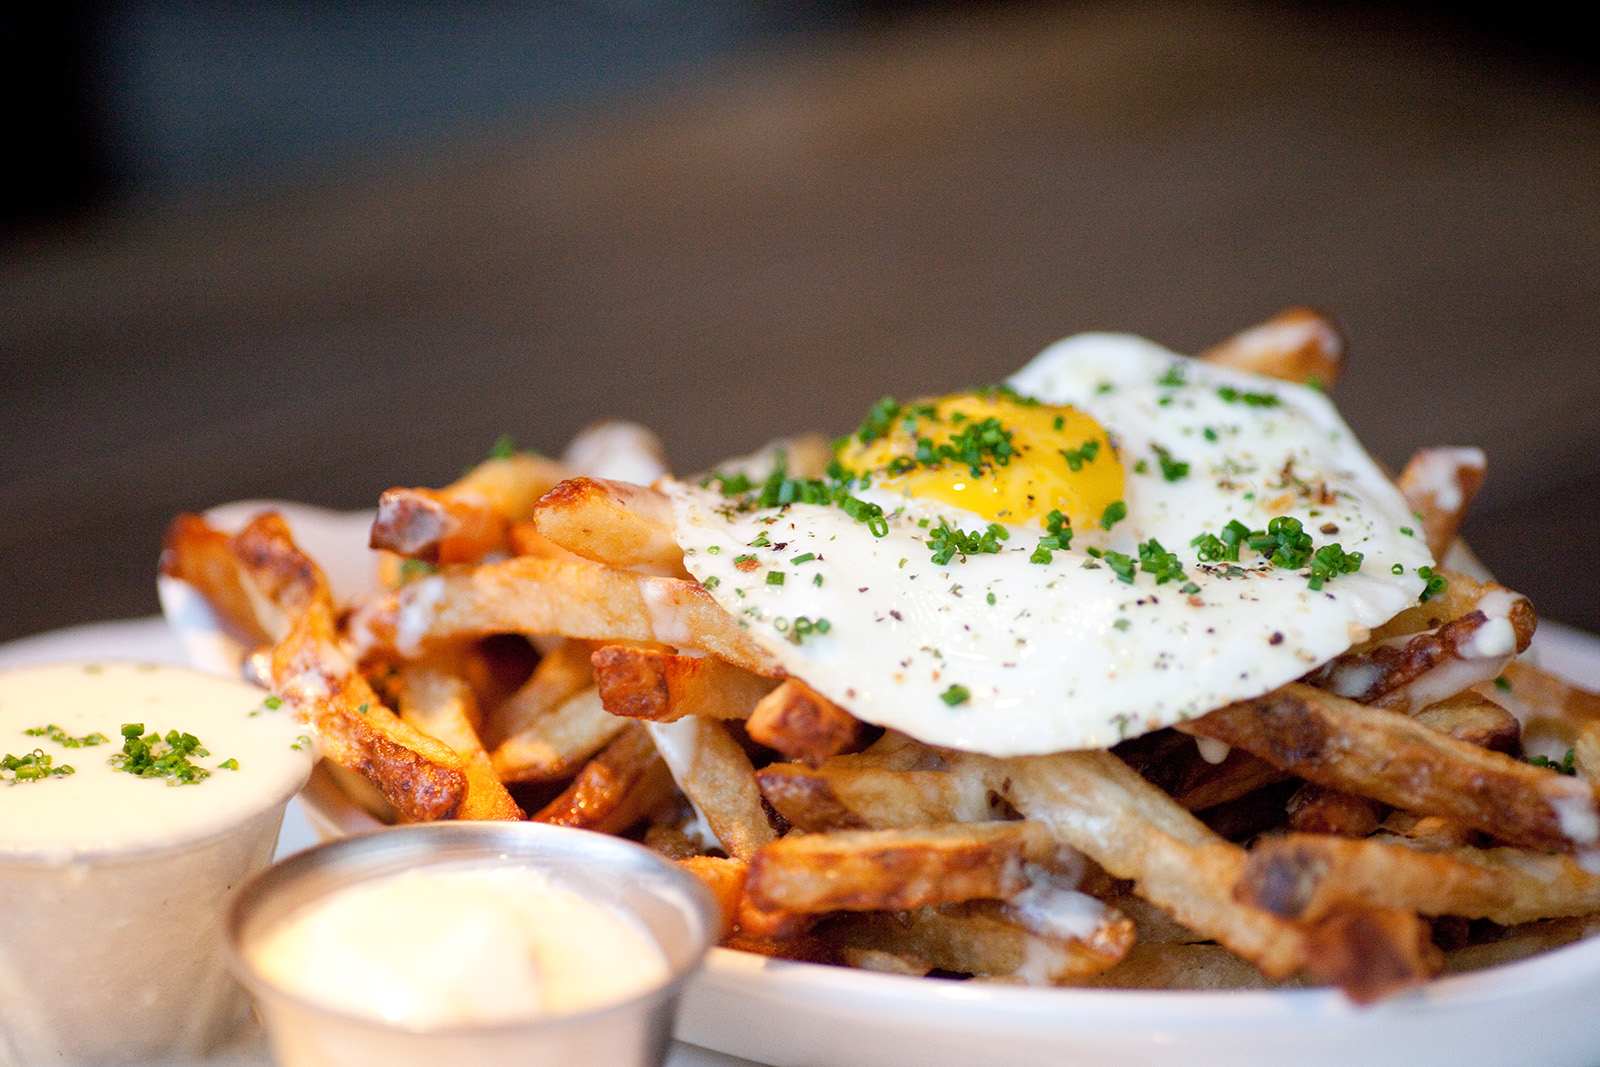 Fries and Eggs